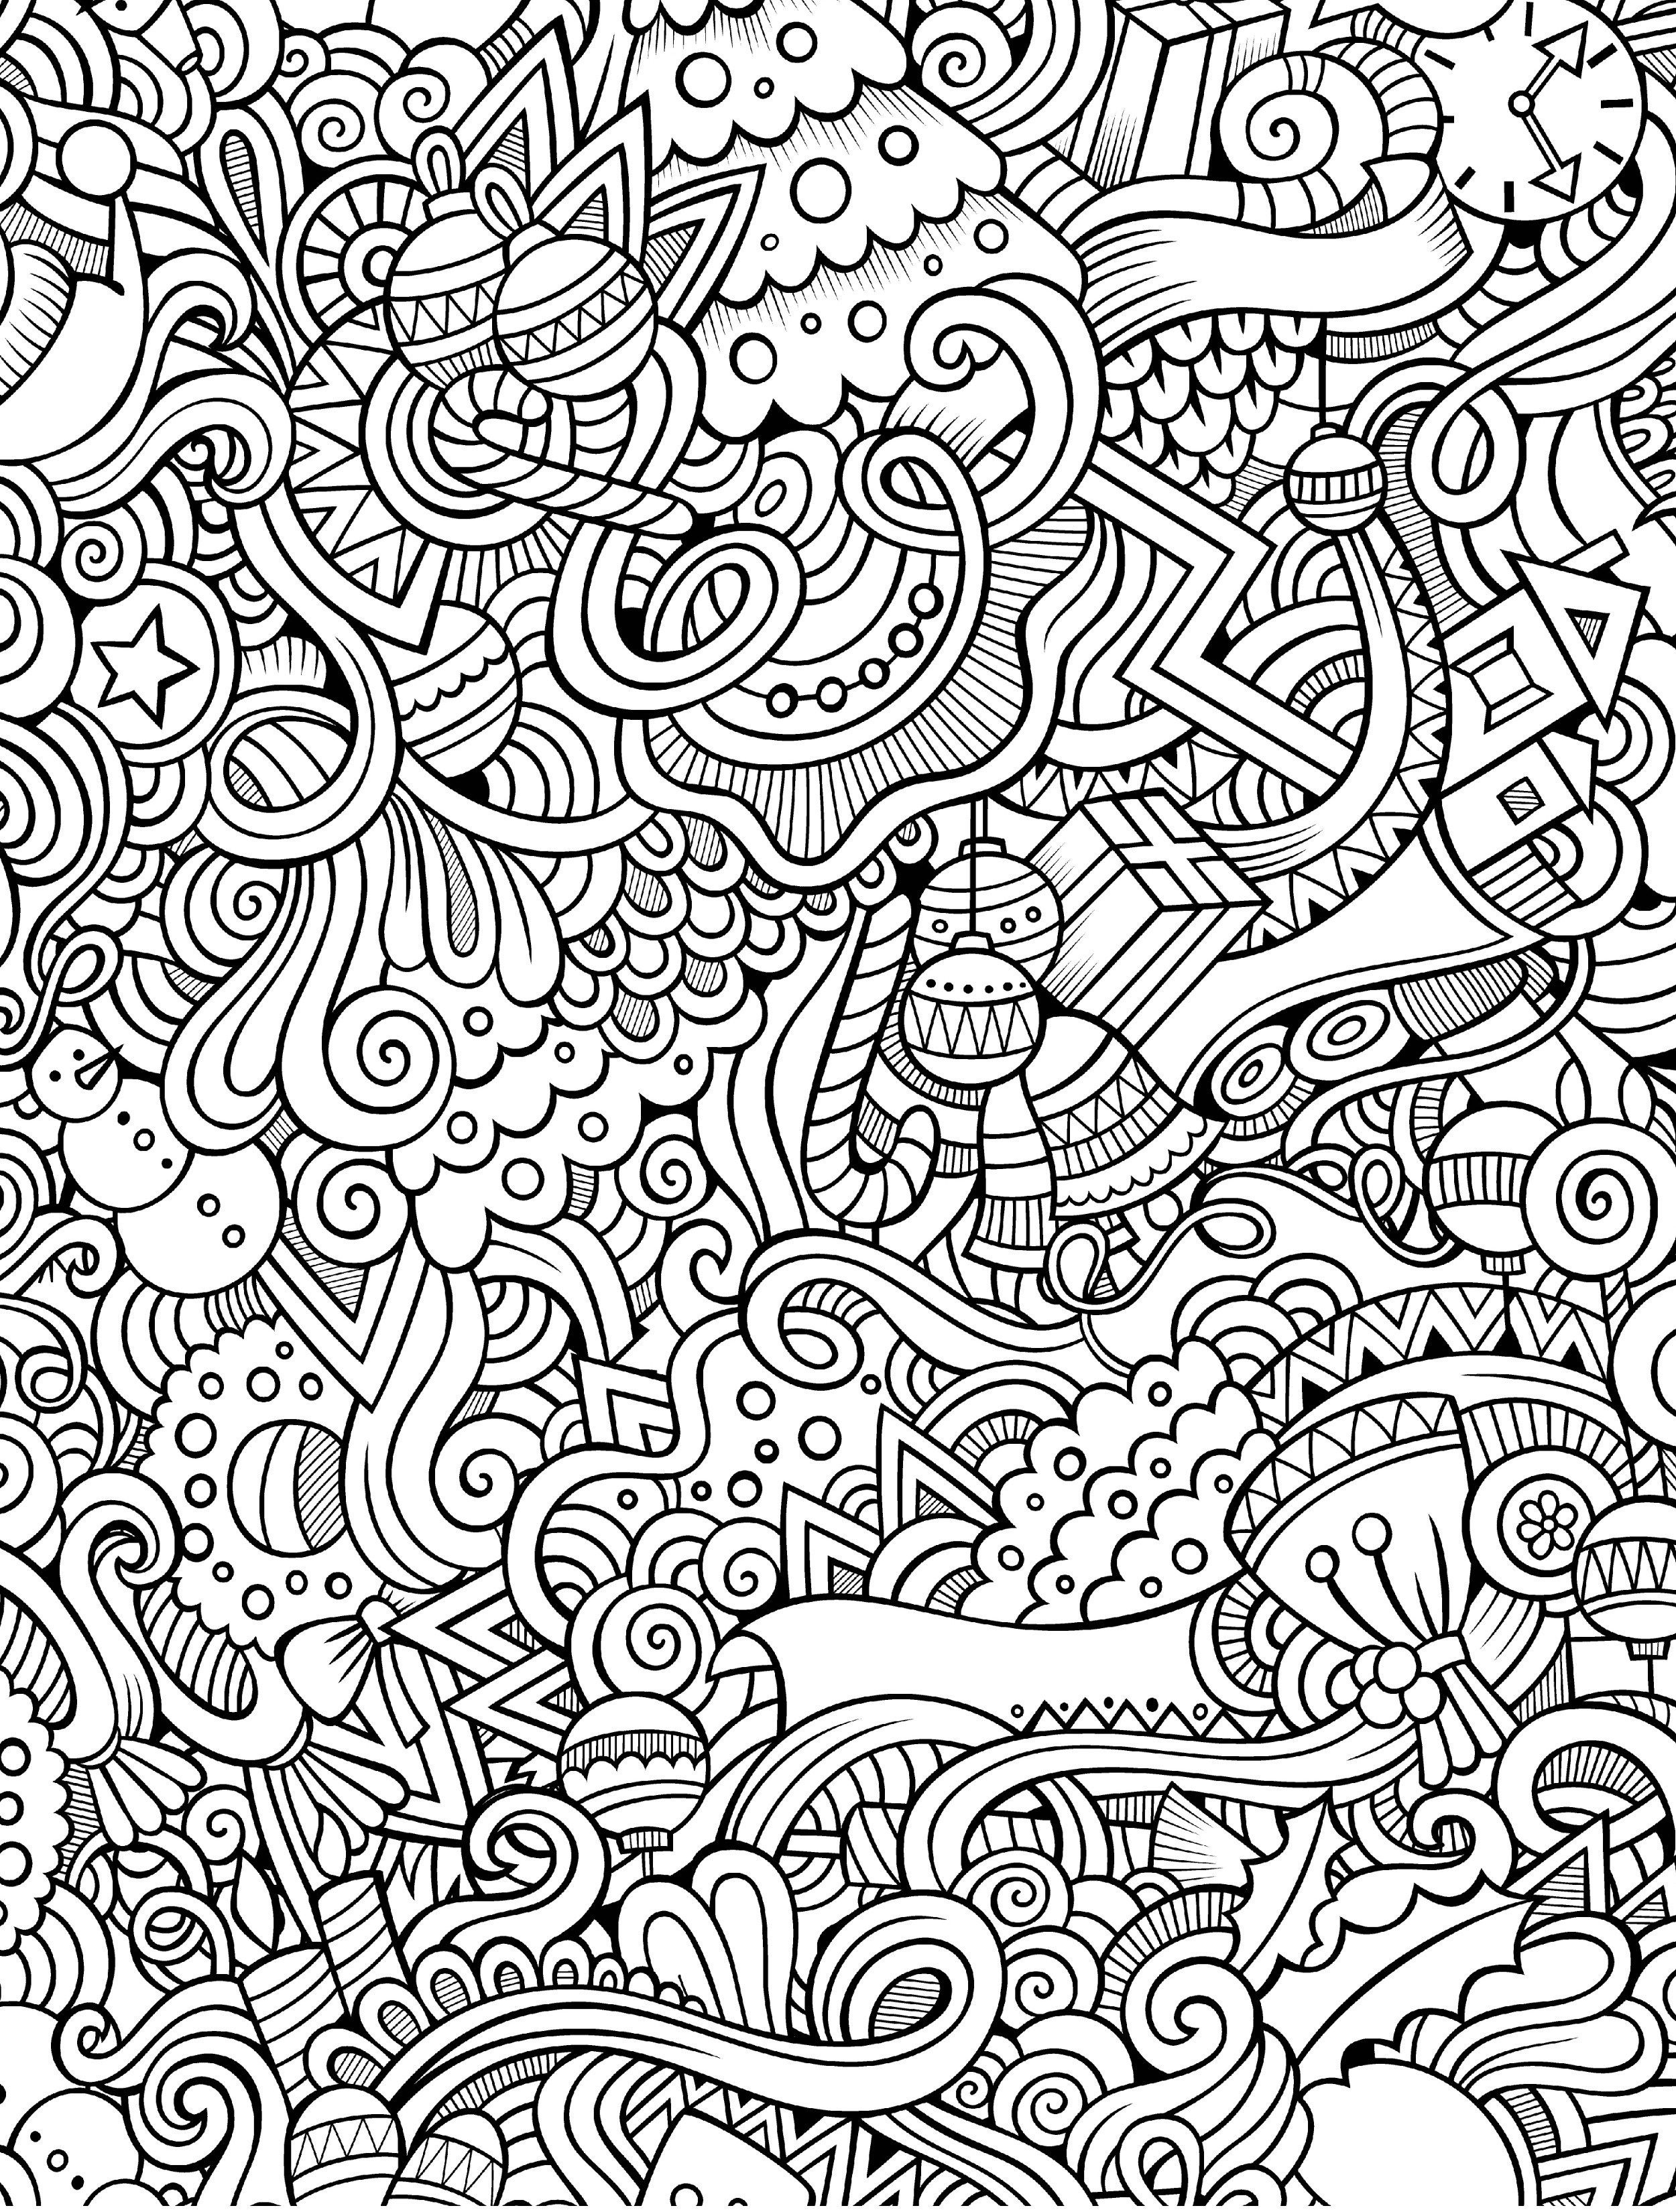 10 Free Printable Holiday Adult Coloring Pages | Coloring Pages - Free Printable Coloring Cards For Adults